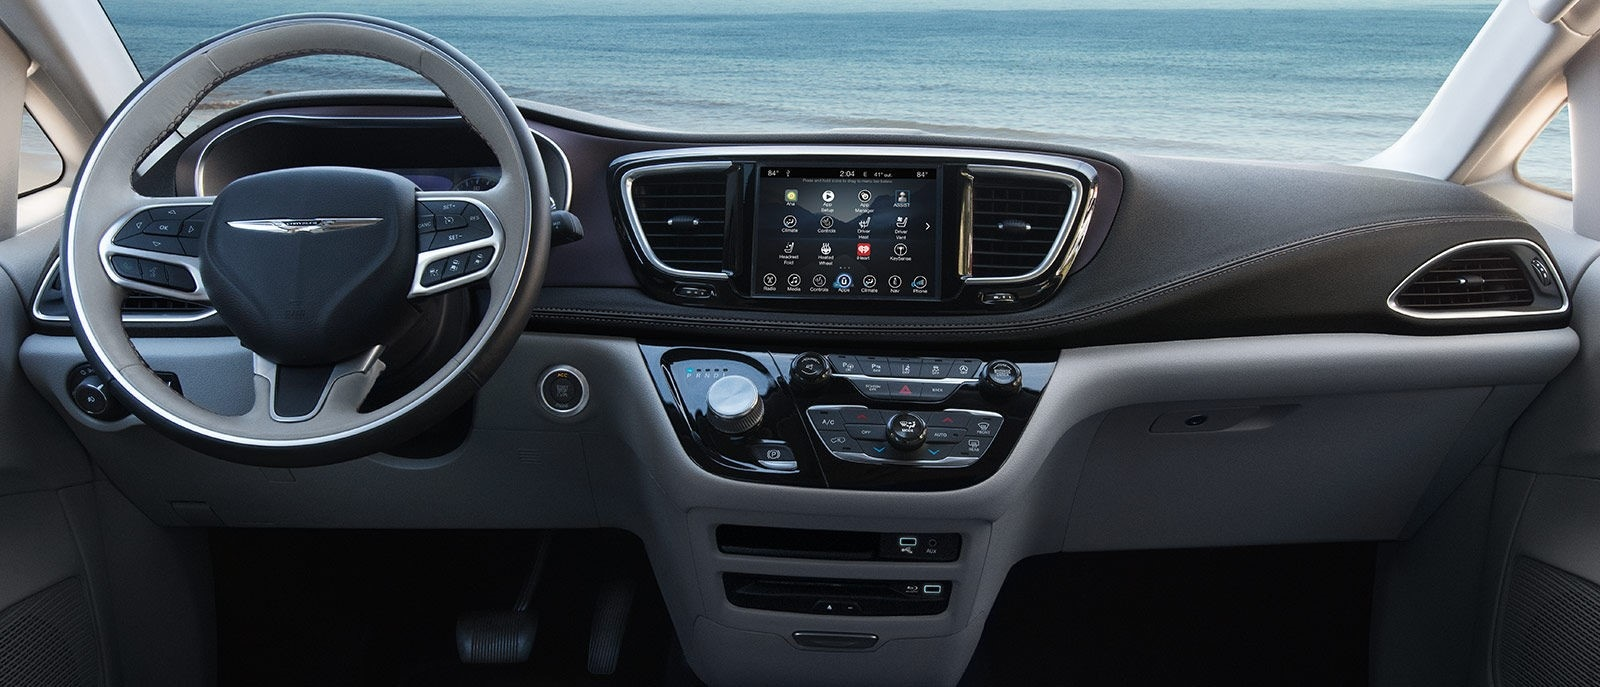 2017-chrysler-pacifica-interior